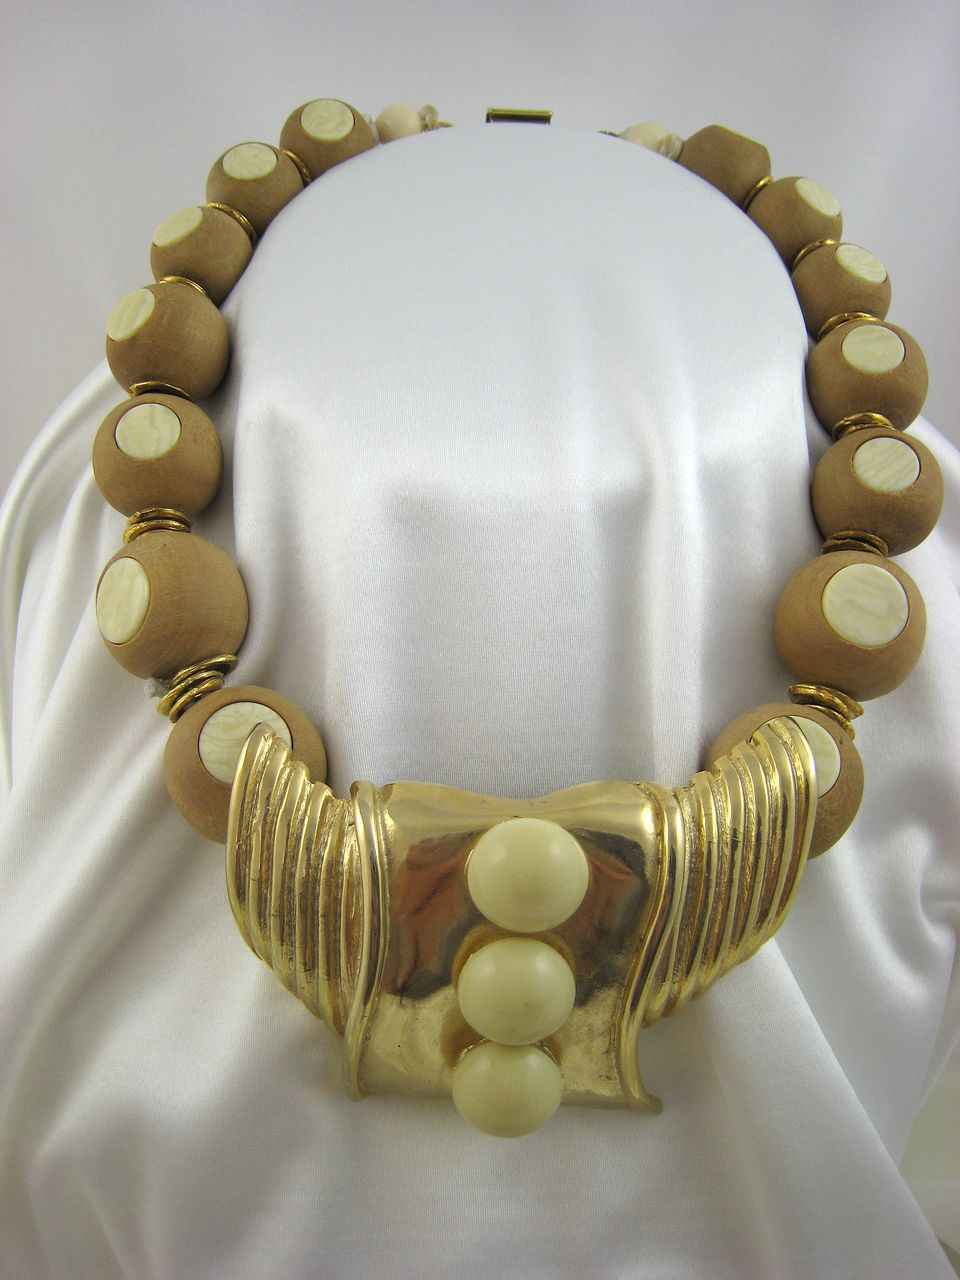 Ugo Correani Italy Necklace Wood and Lucite Huge Drop Balls